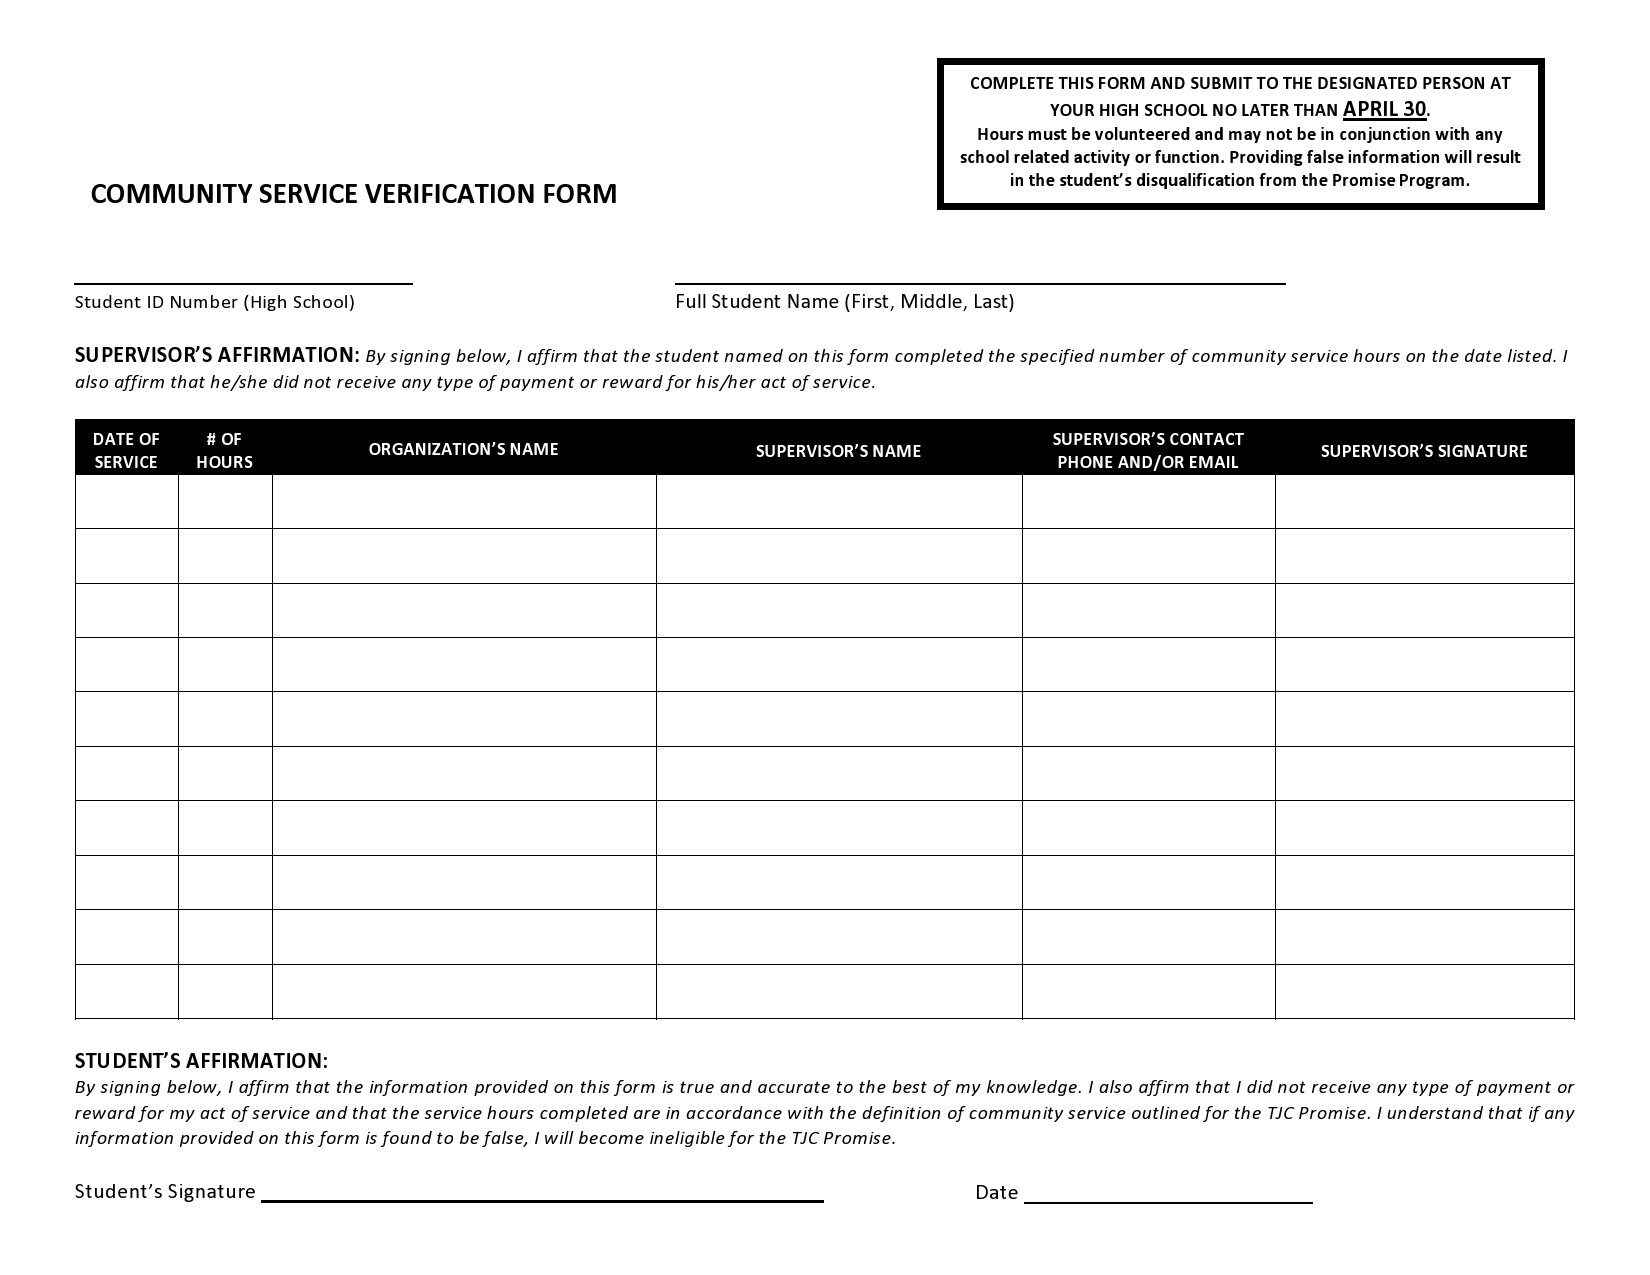 Free community service form 31